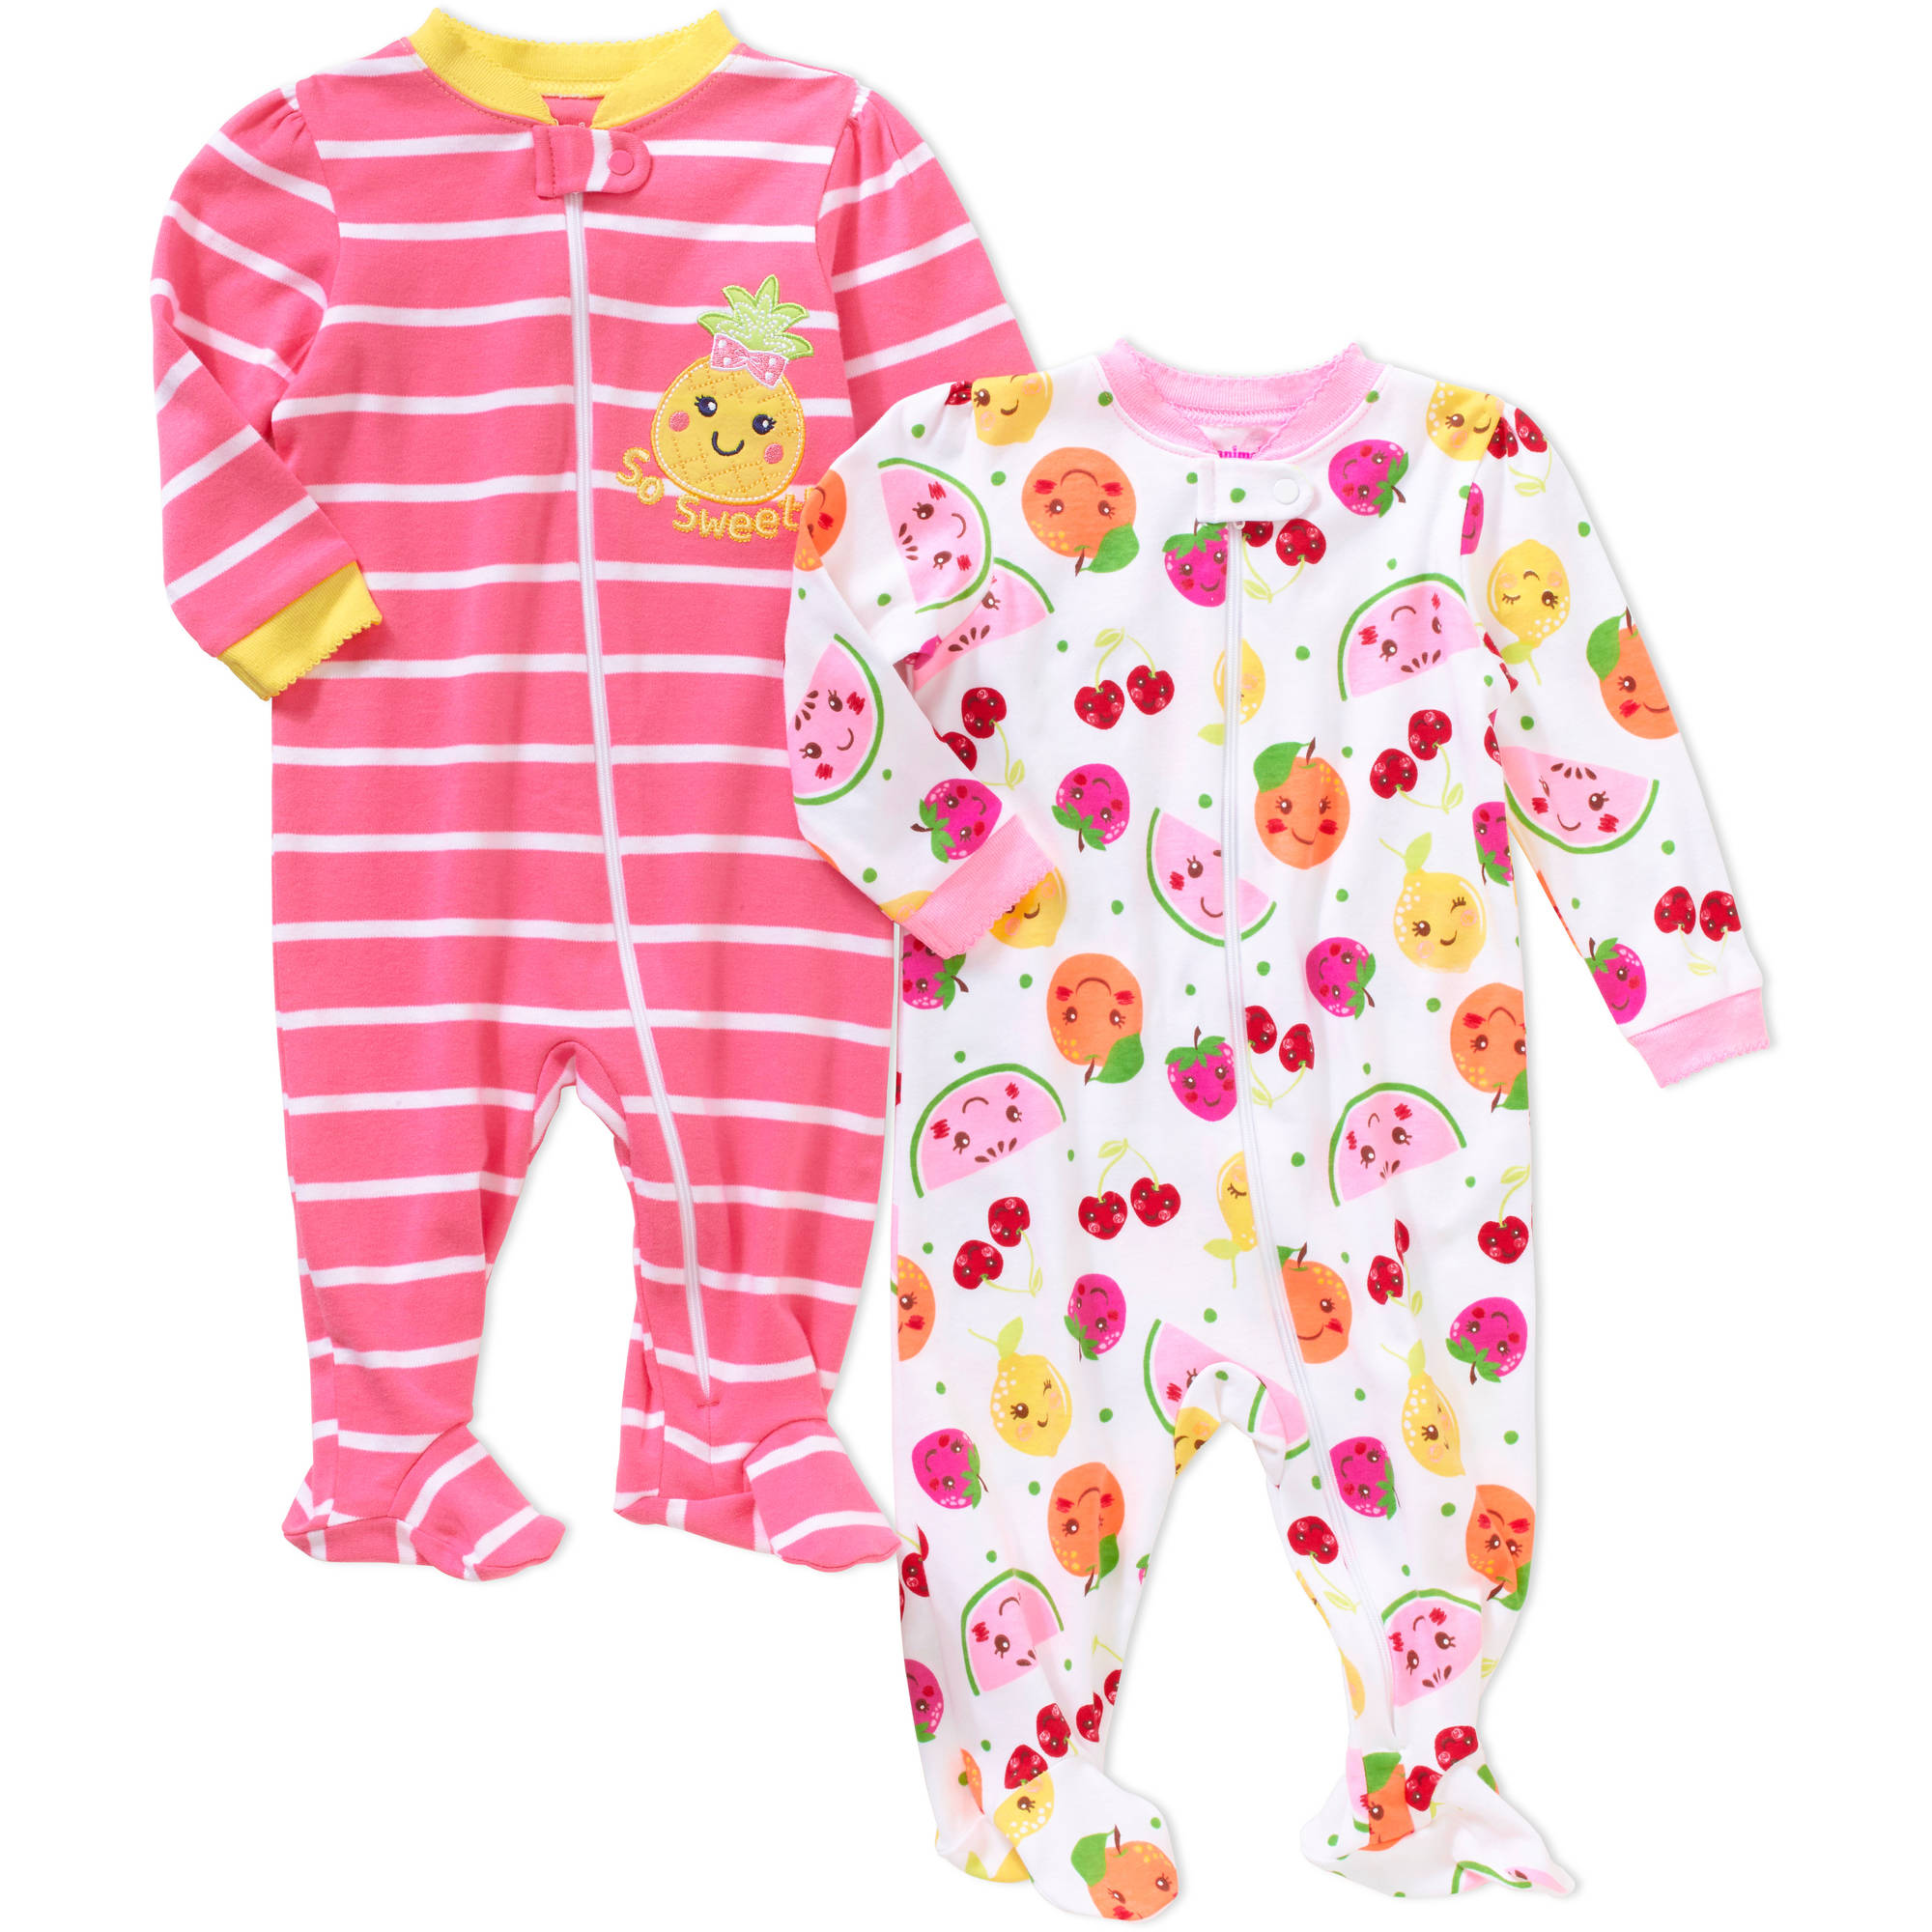 49ea667a66bb Garanimals Baby   Toddler Sleepwear